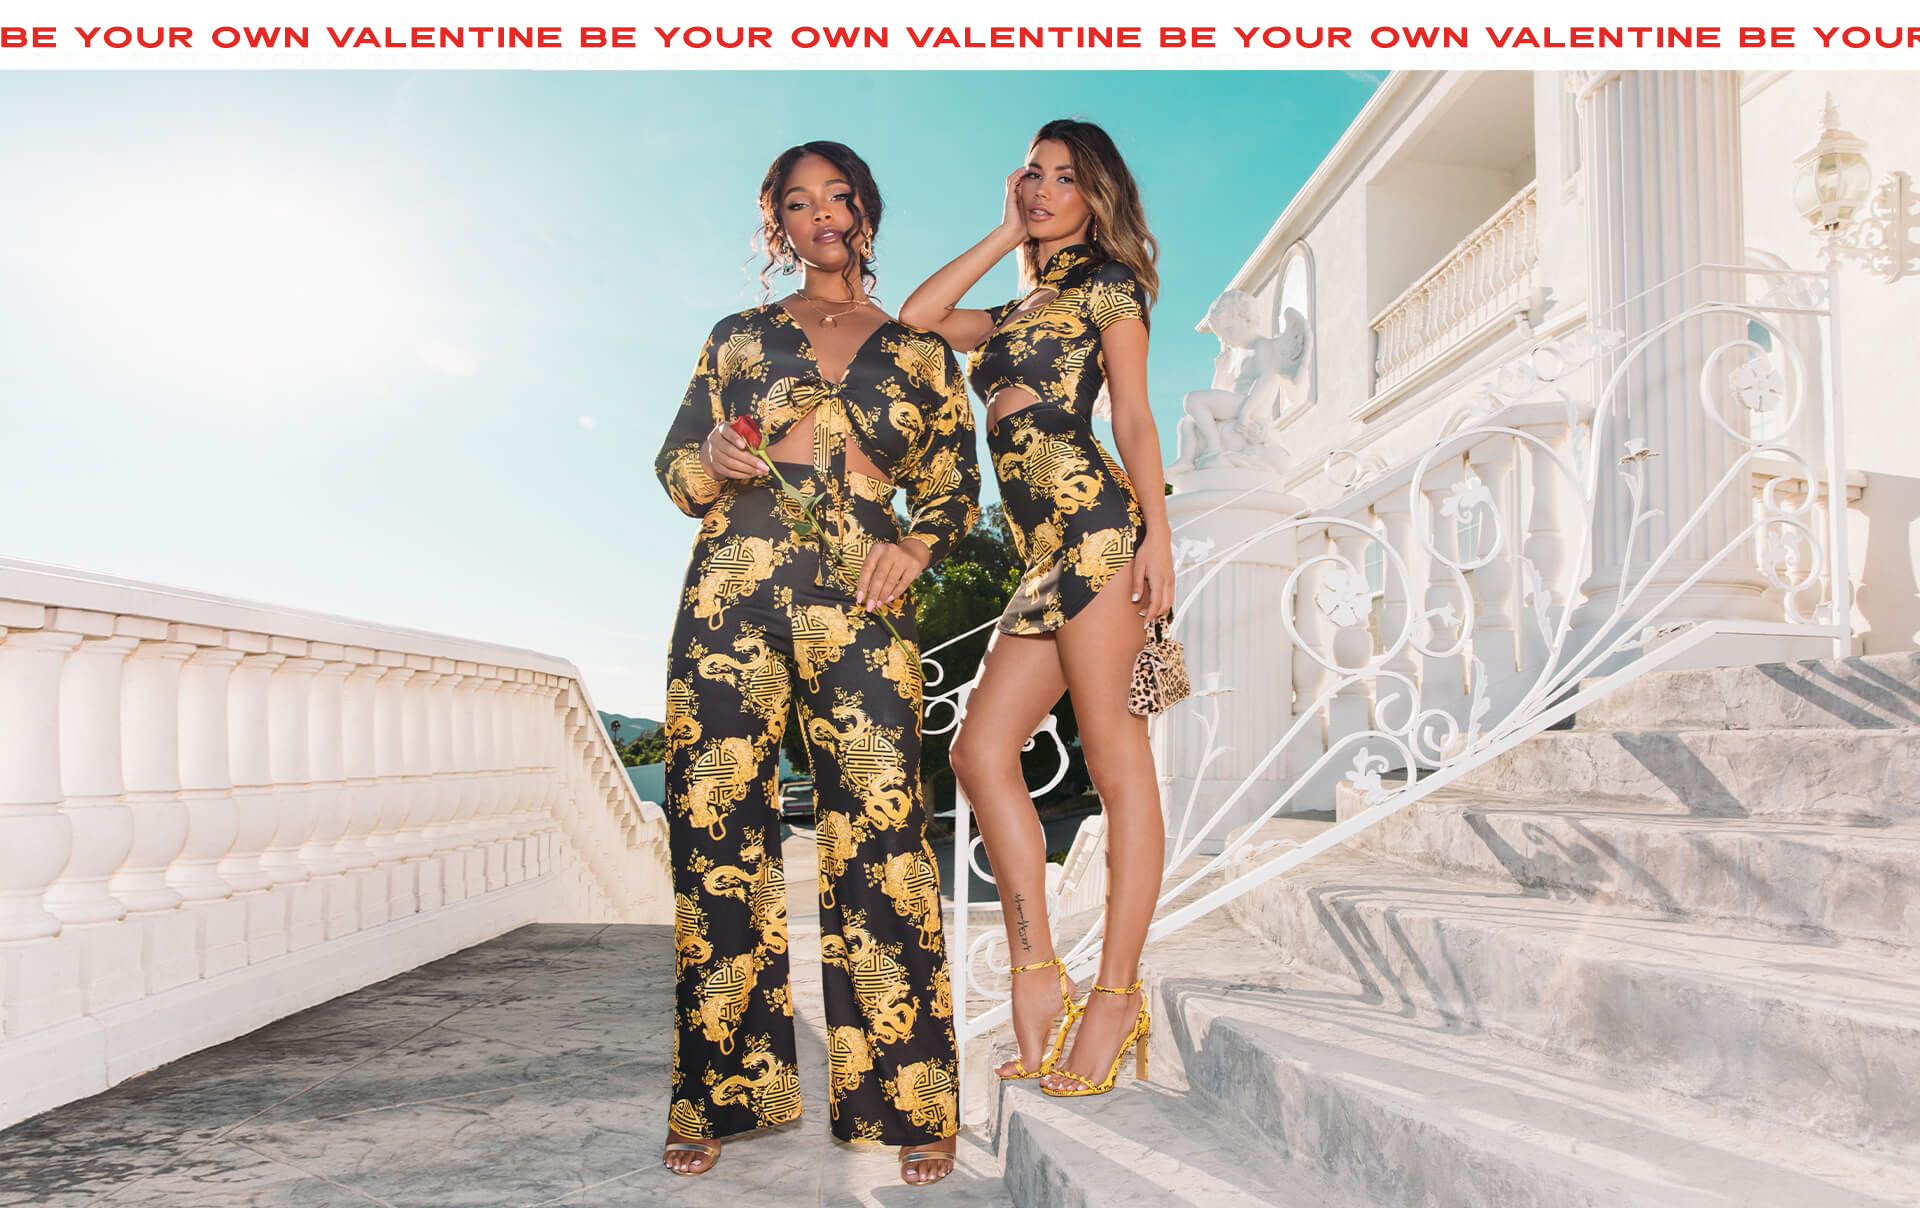 Galentines Day Lookbook Image 18 Desktop